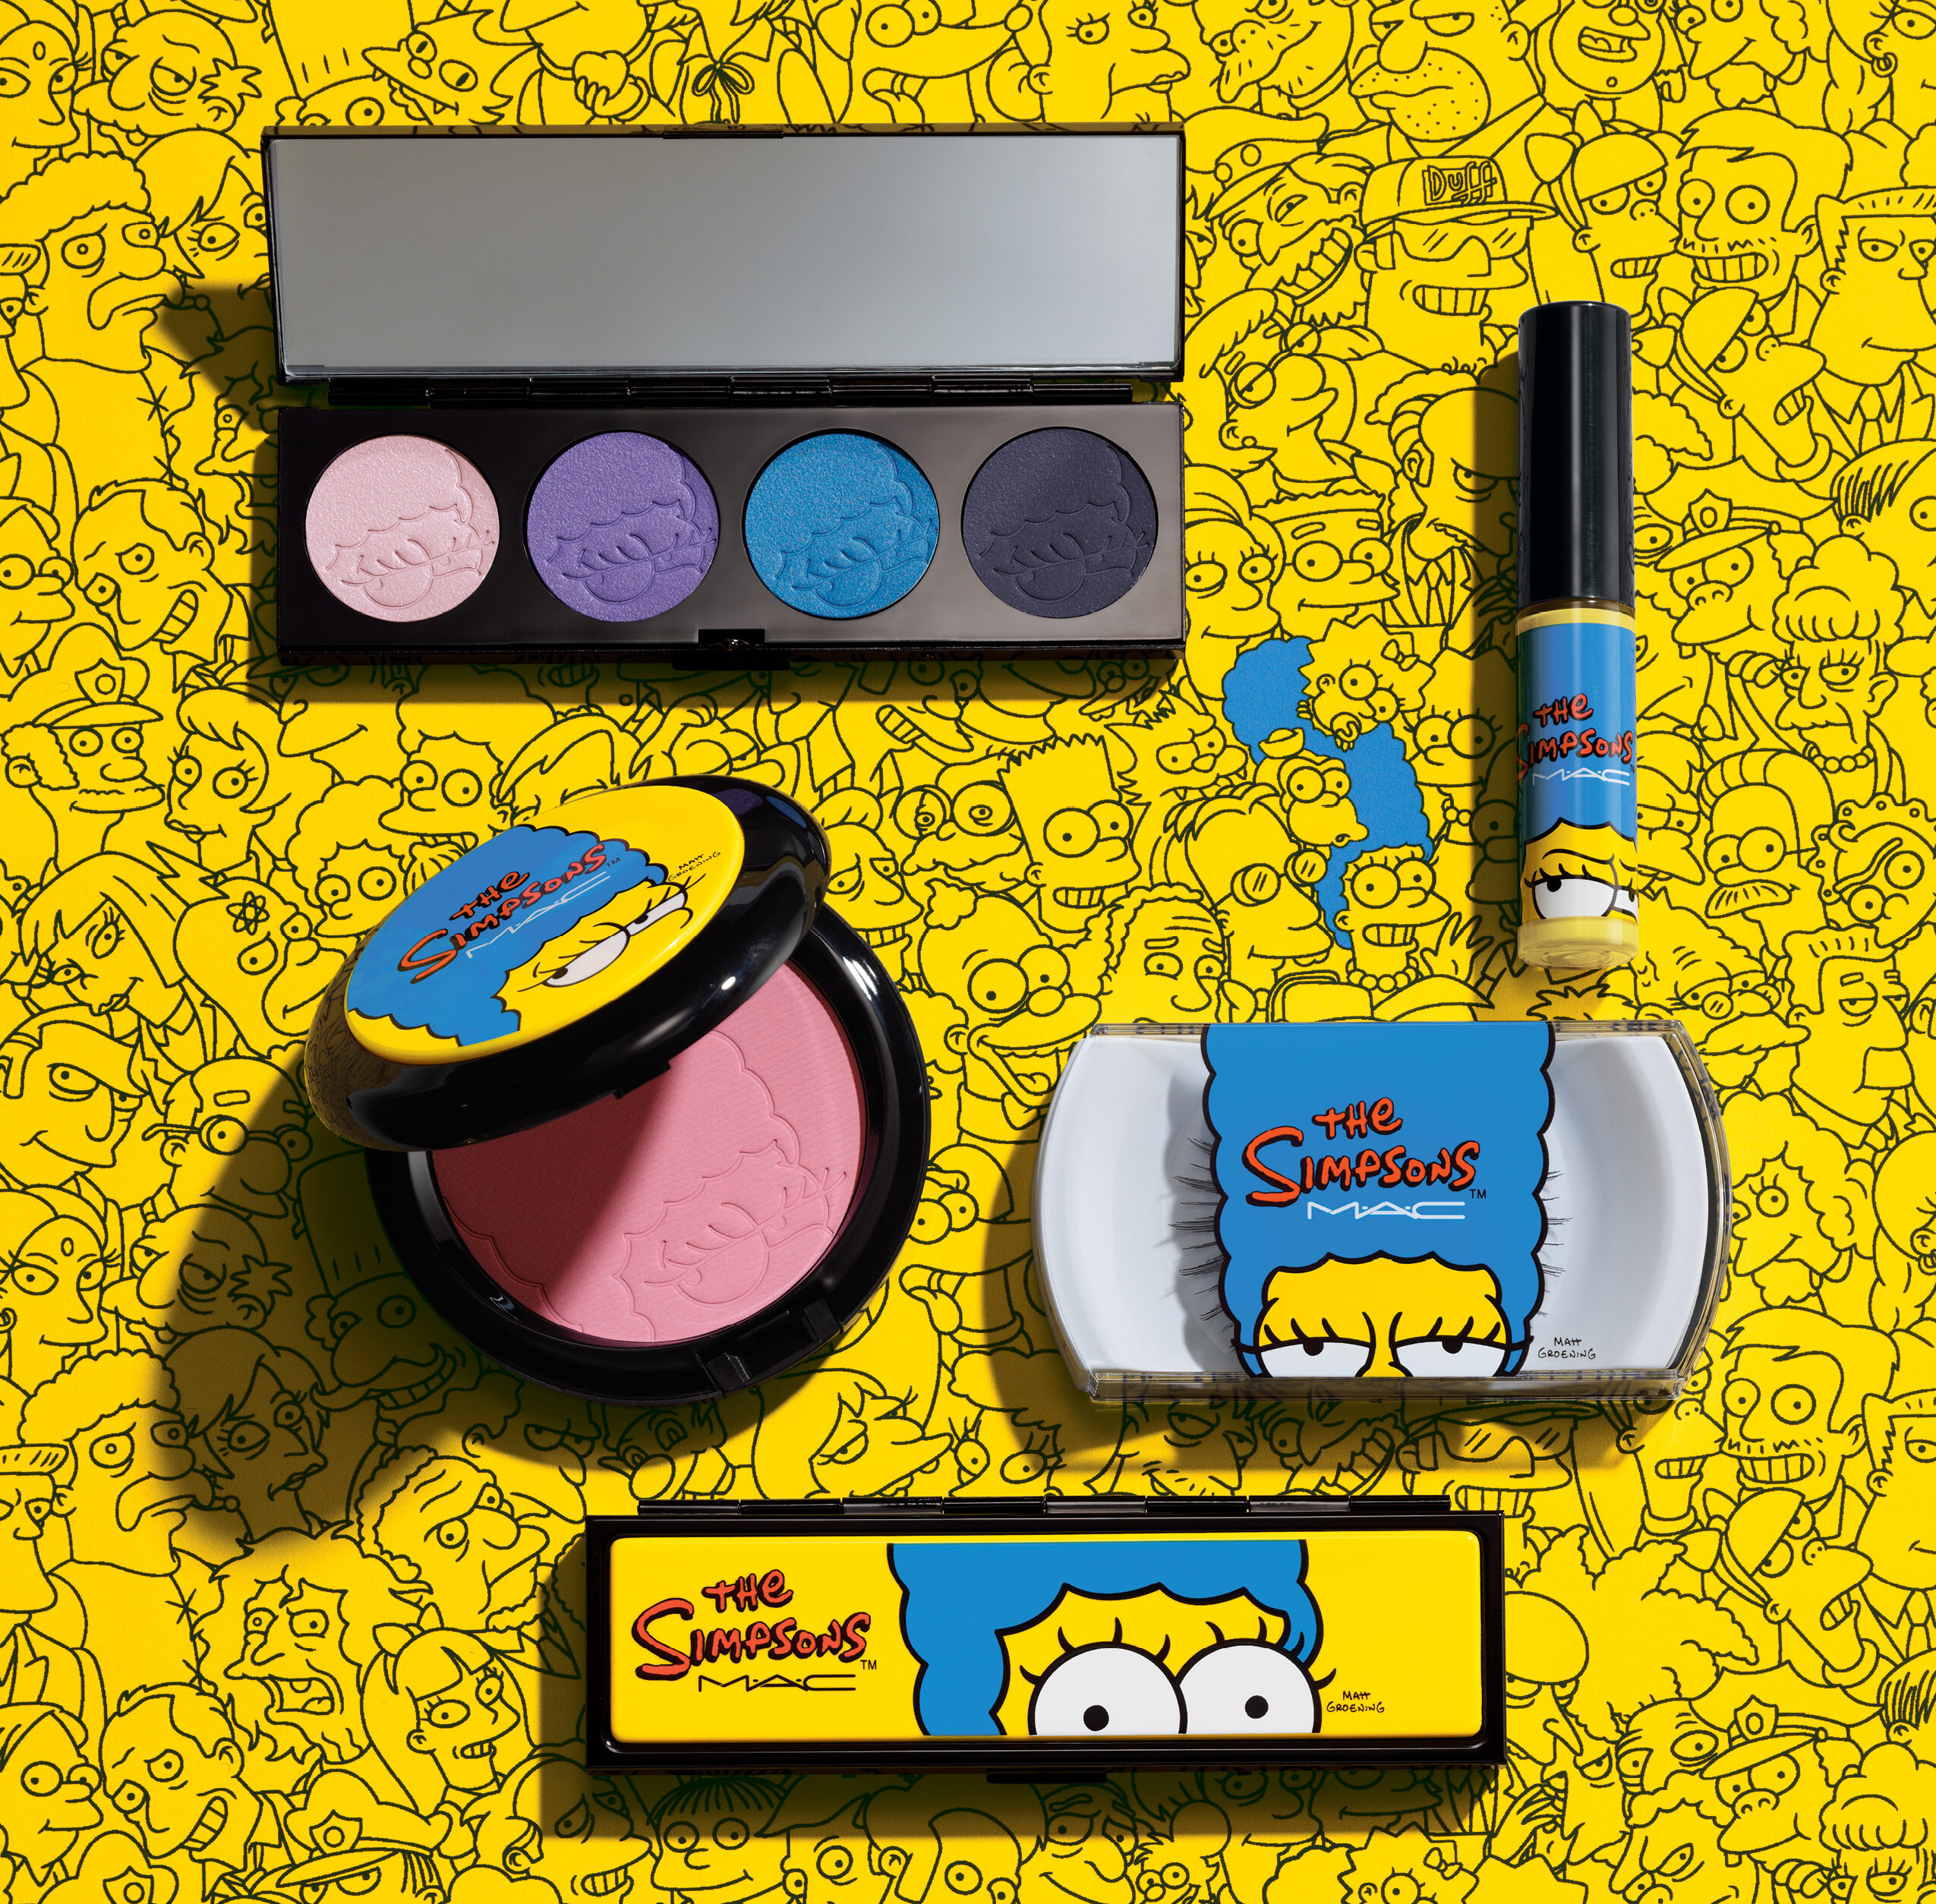 MAC Makeup - The Simpsons collection